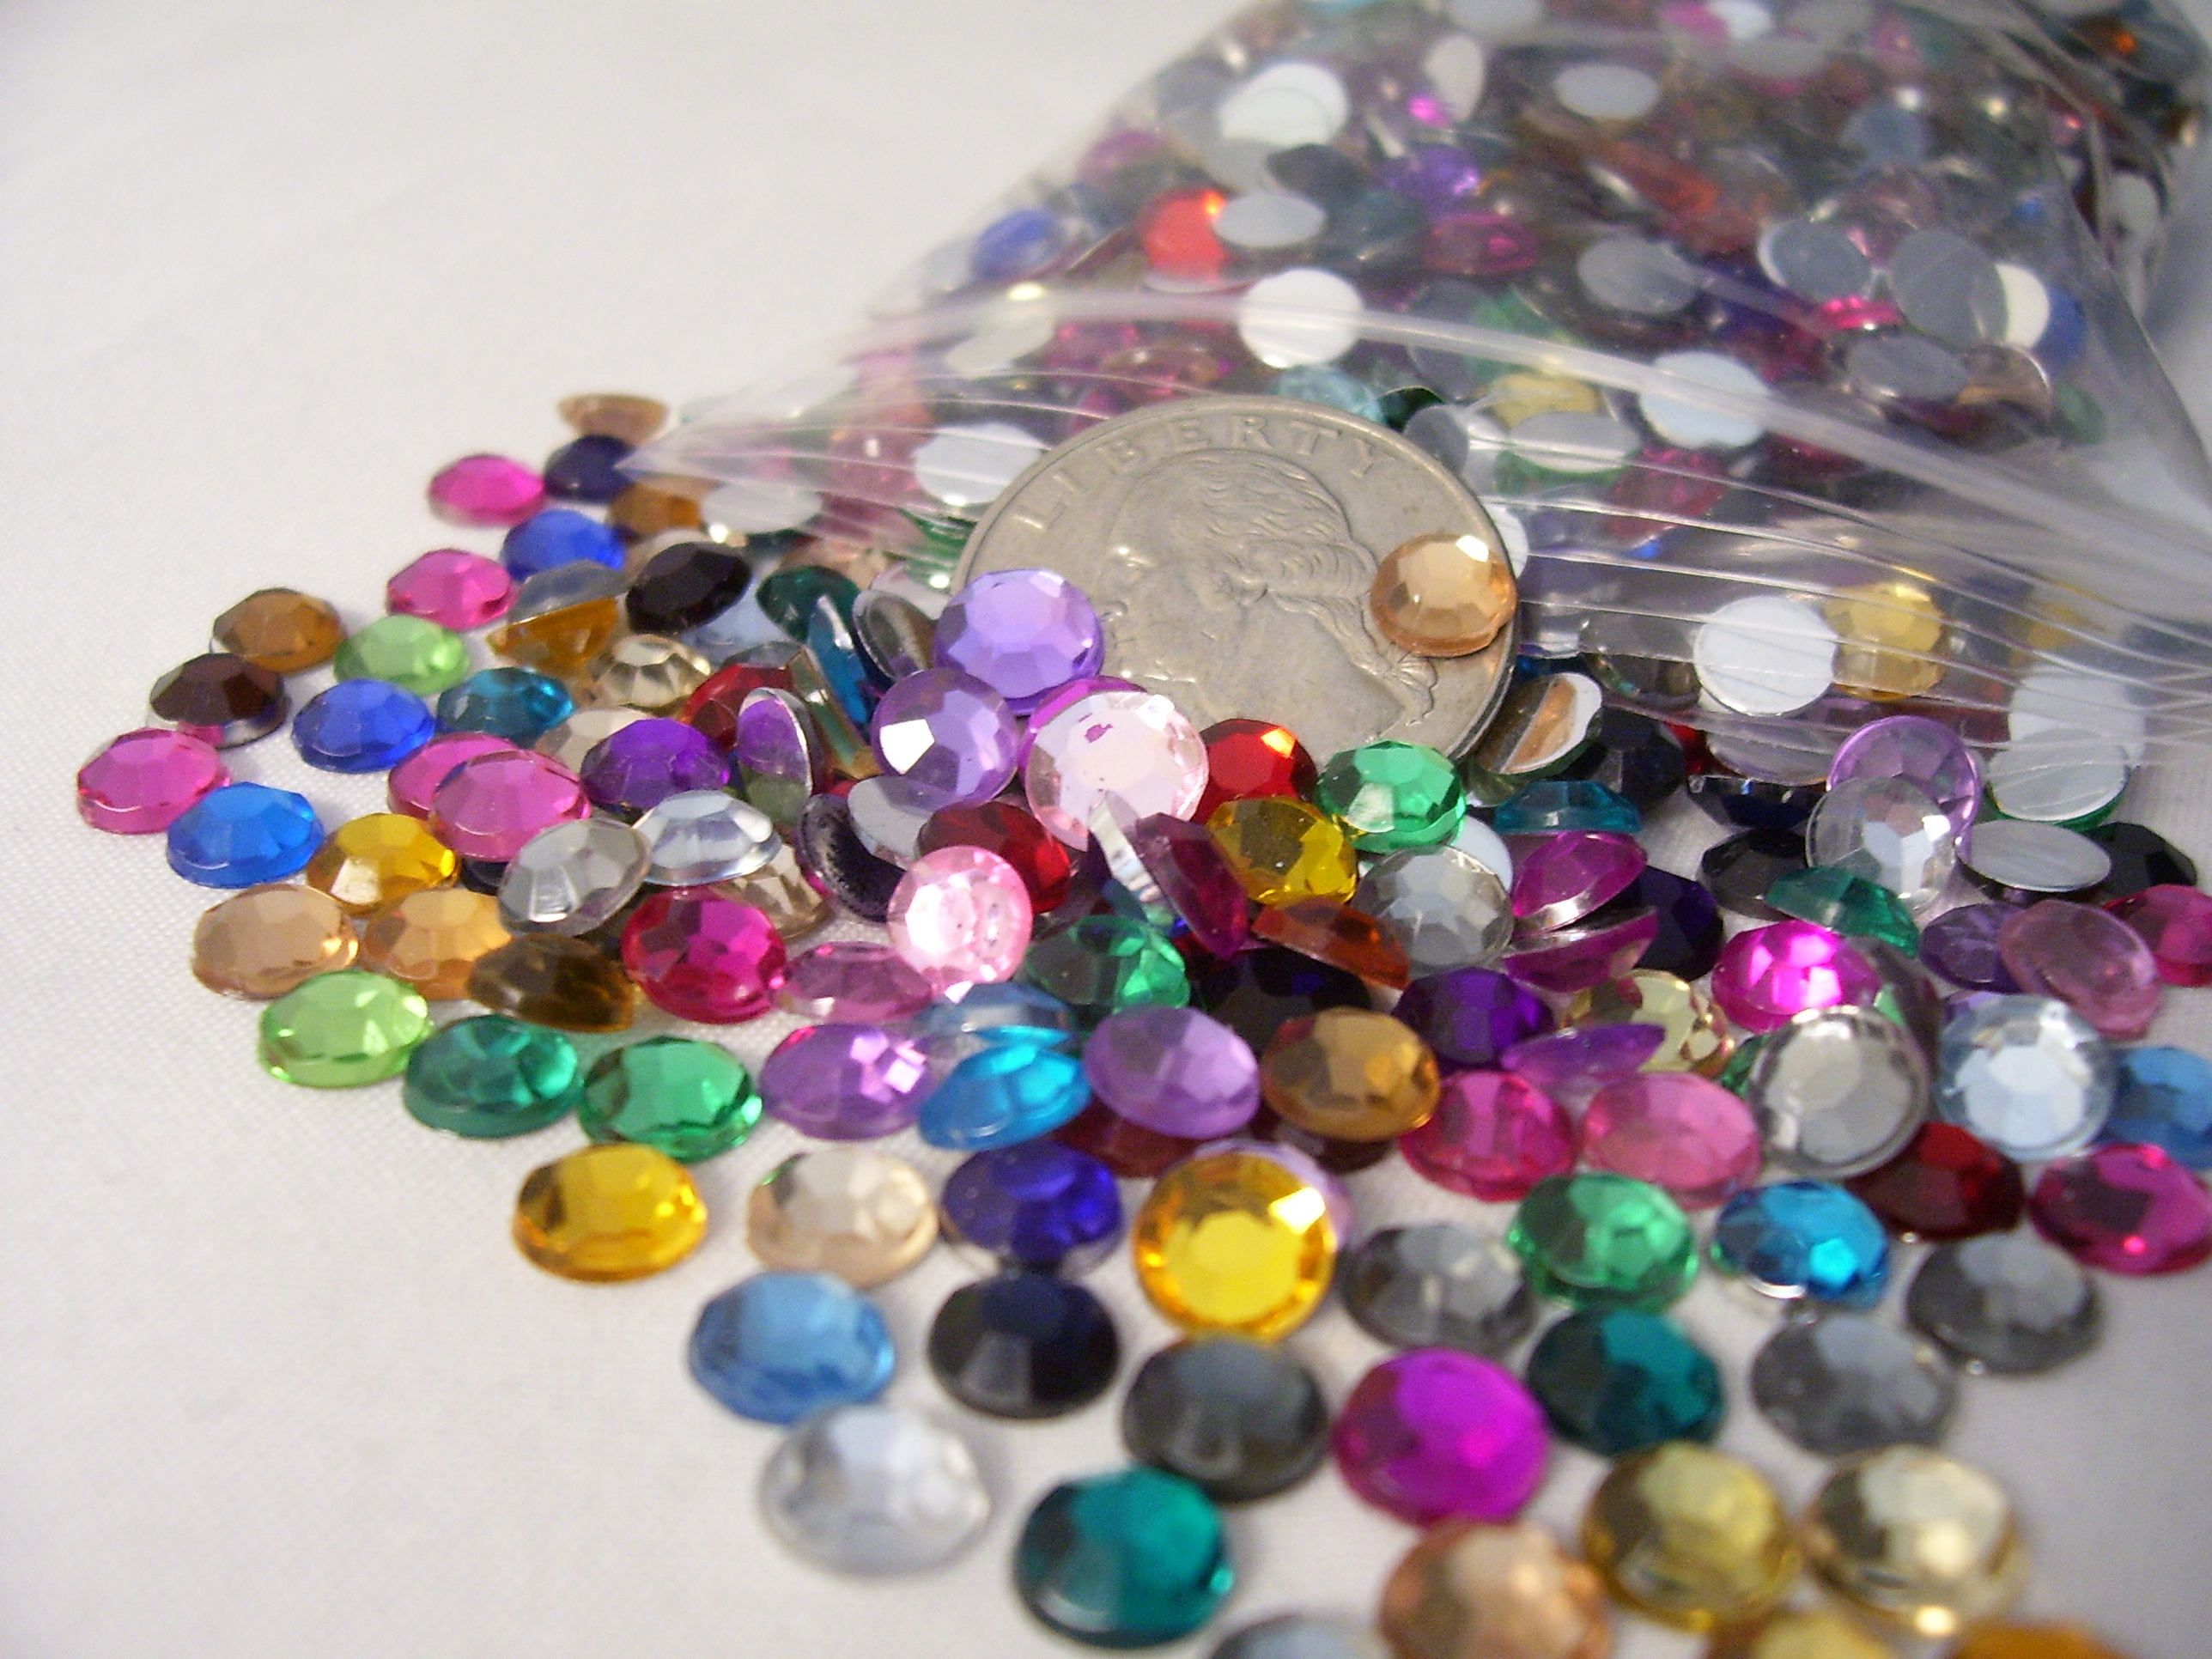 Bulk Loose Flat back 1400 - 2100 Gems Rhinestones Jewels Assorted ...